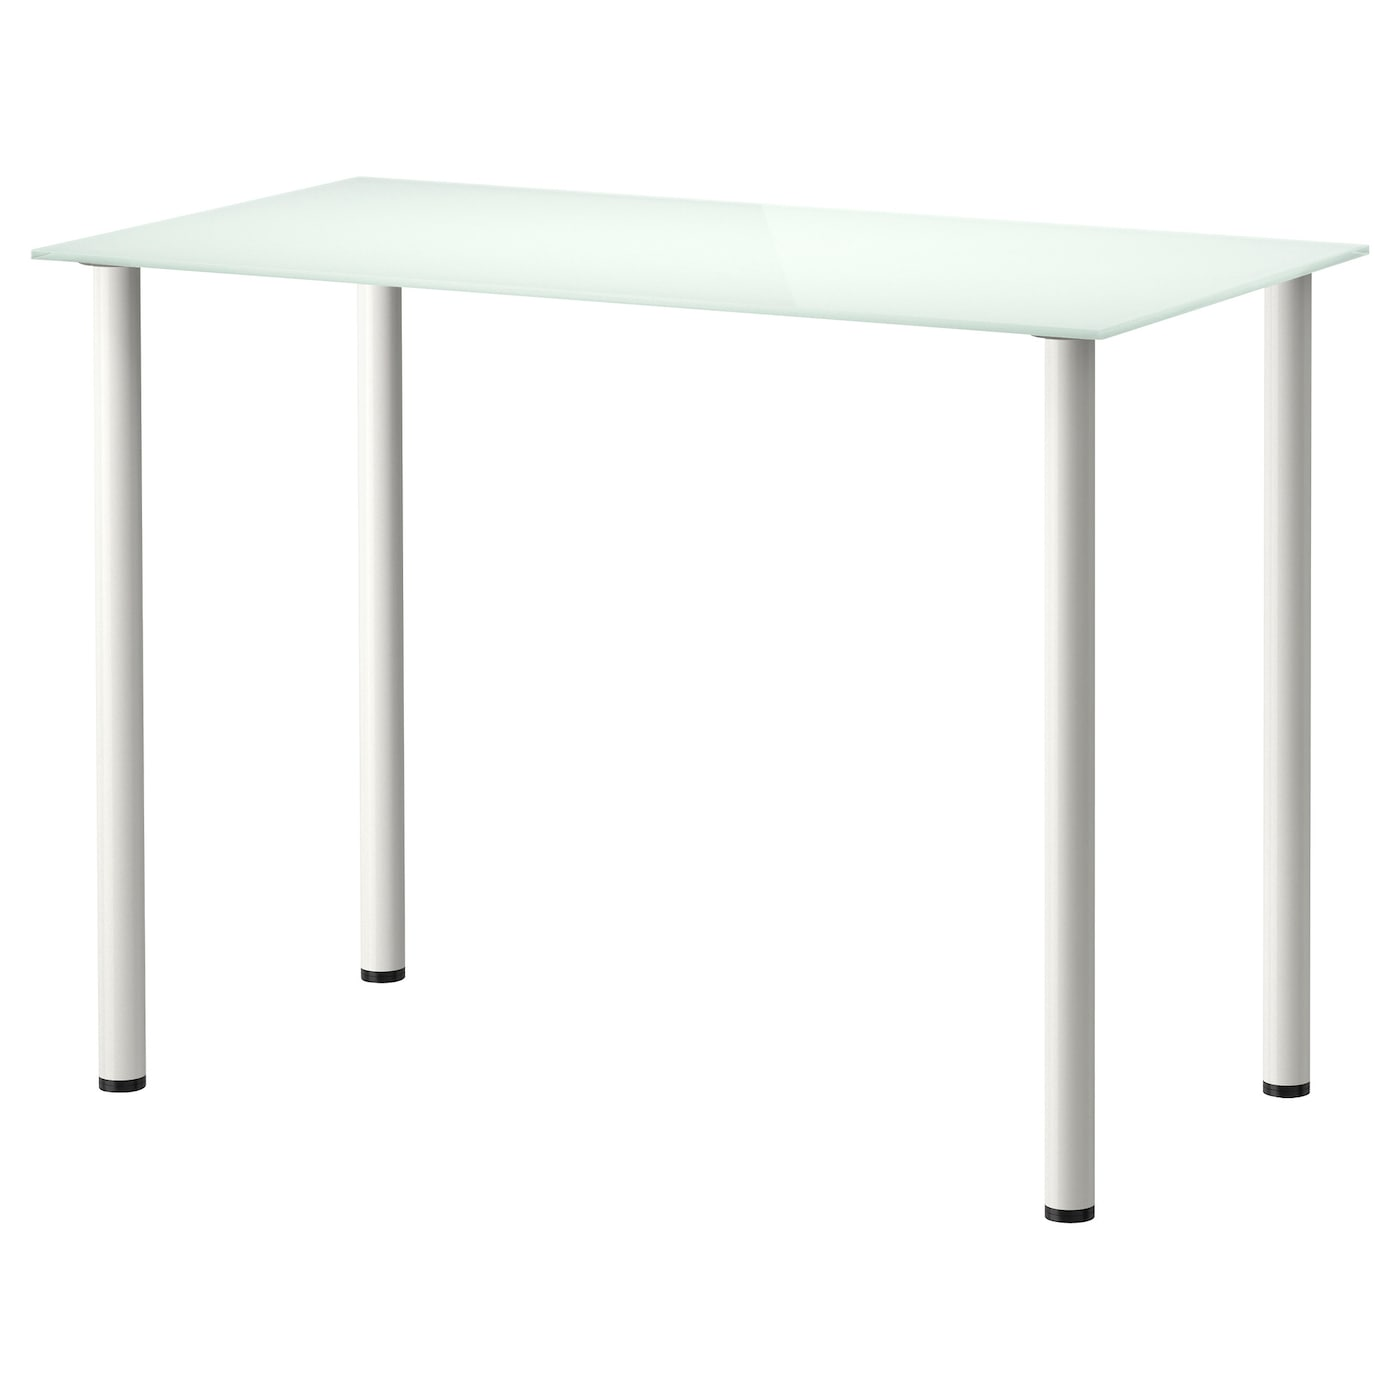 Glasholm adils table glass white white 99x52 cm ikea for Table basse blanc ikea